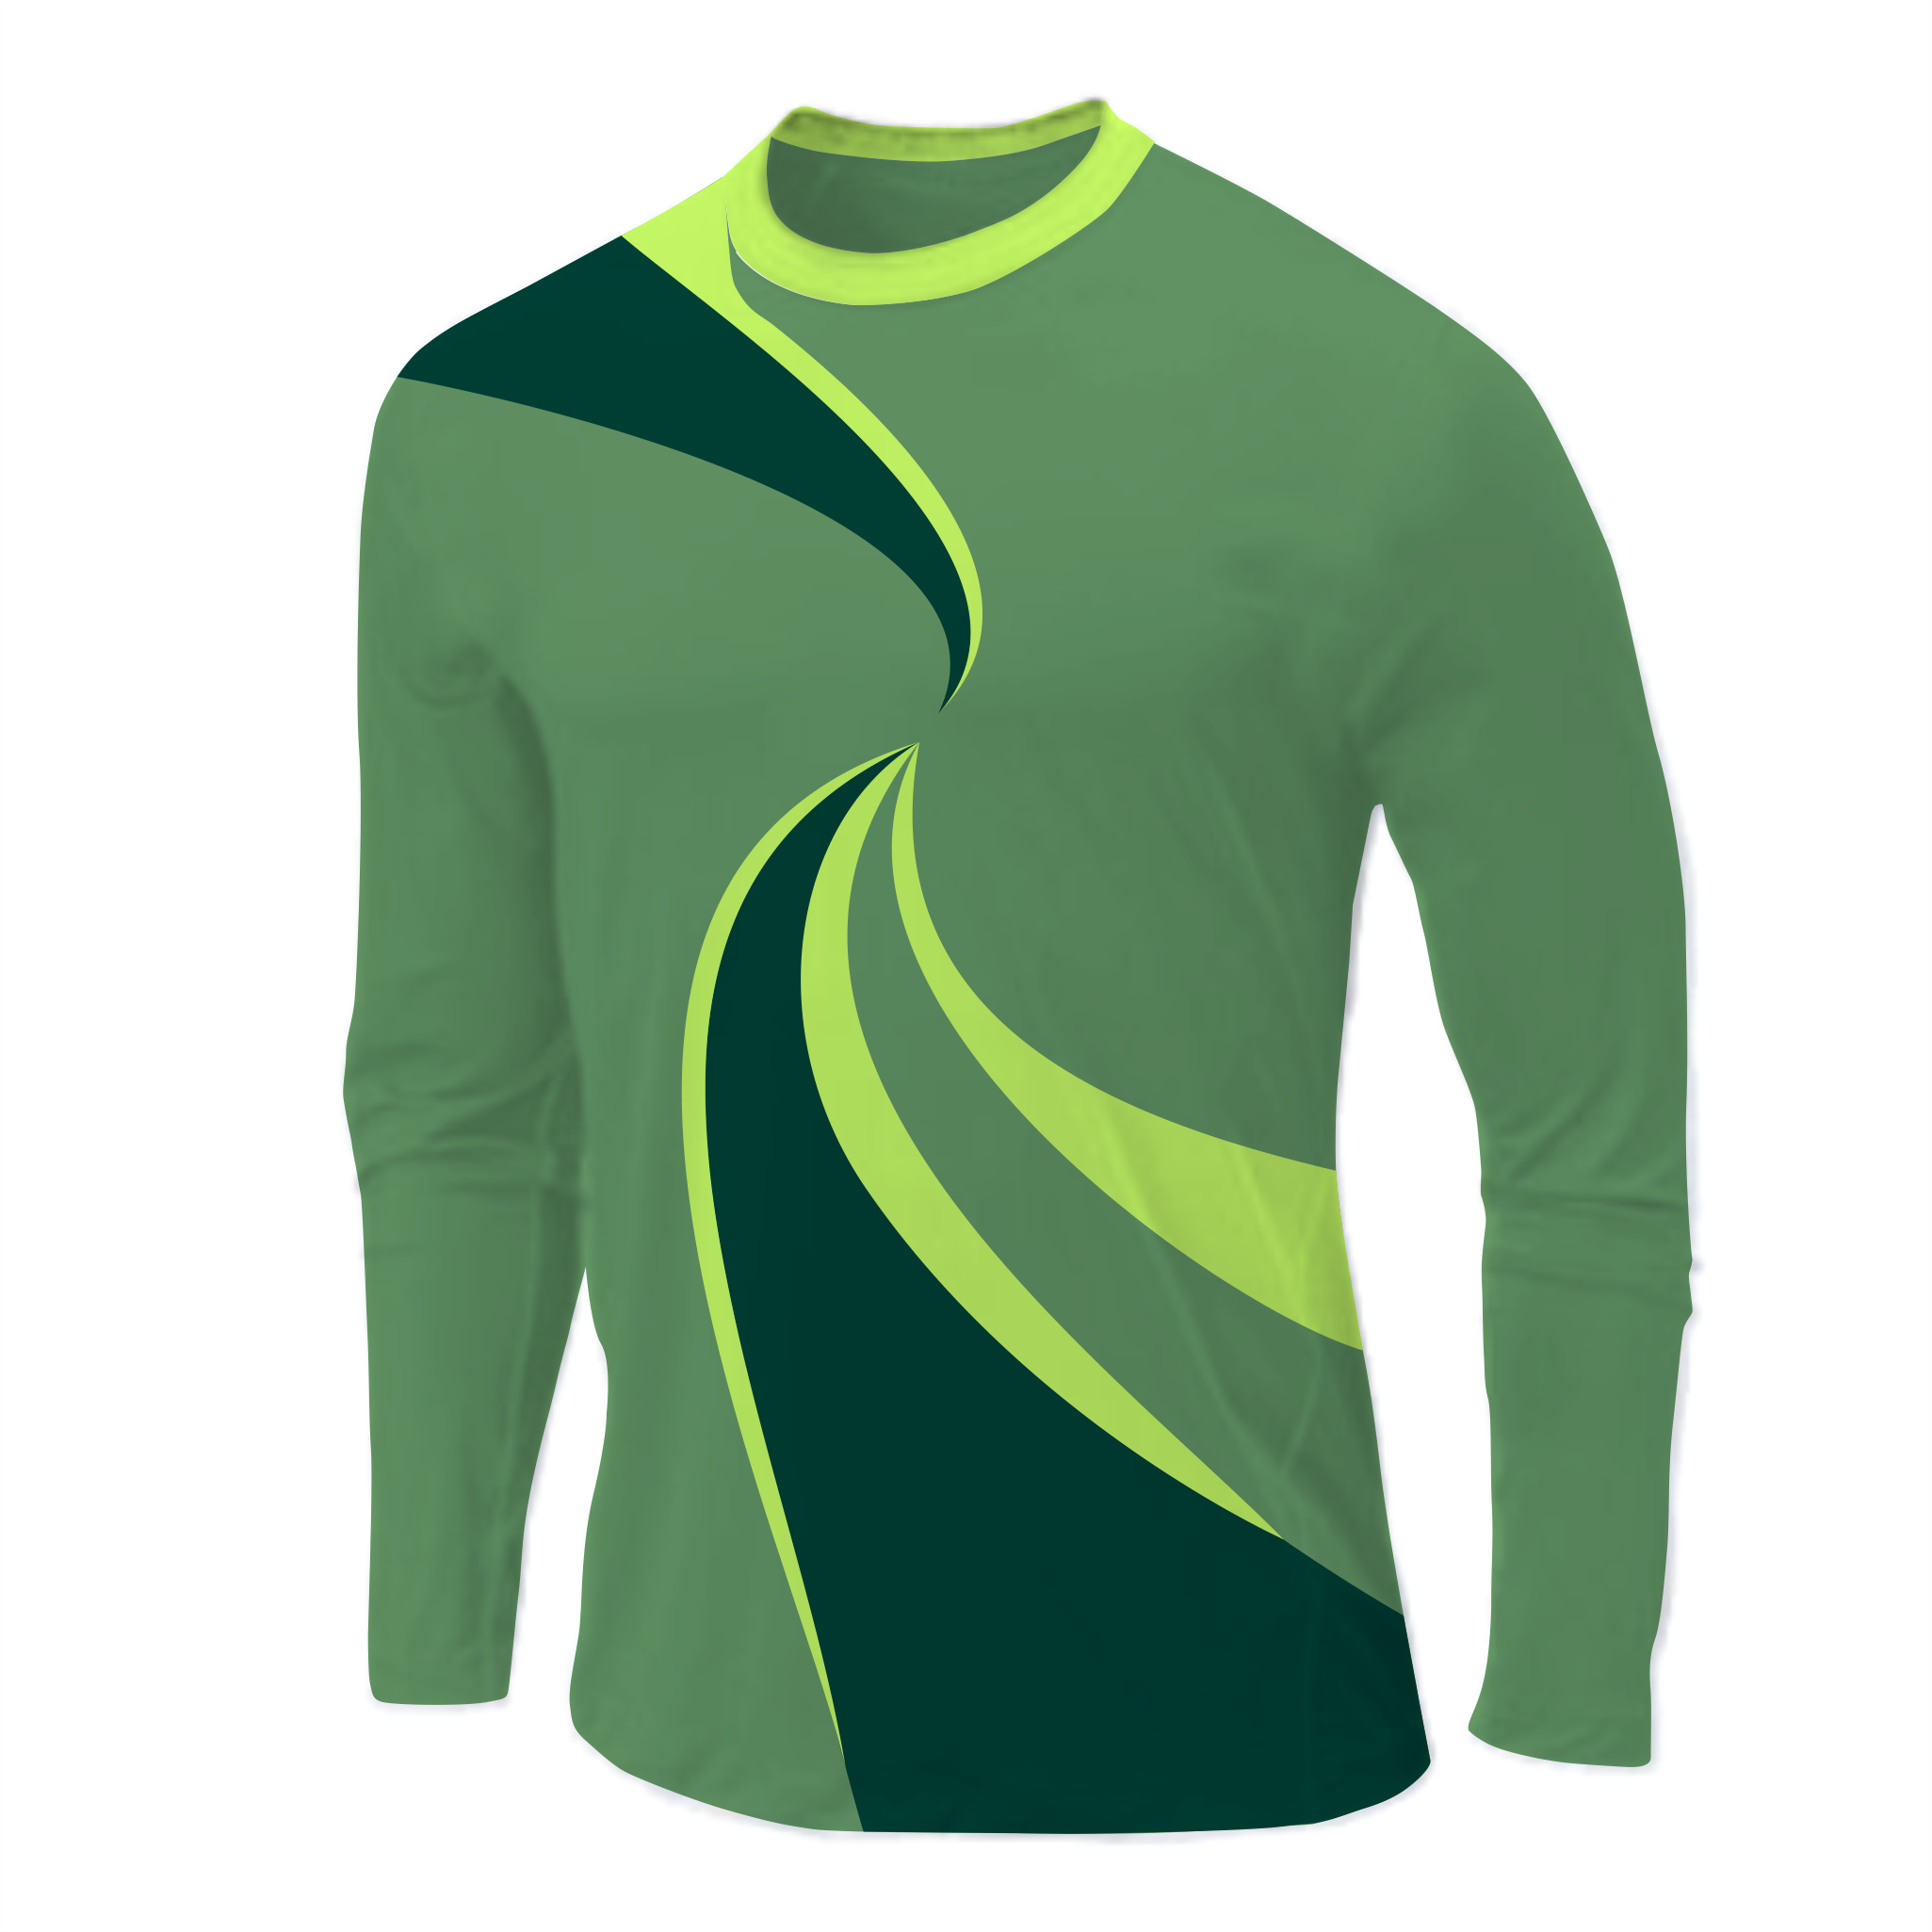 Sublimated - long sleeve t-shirt - Tyrone